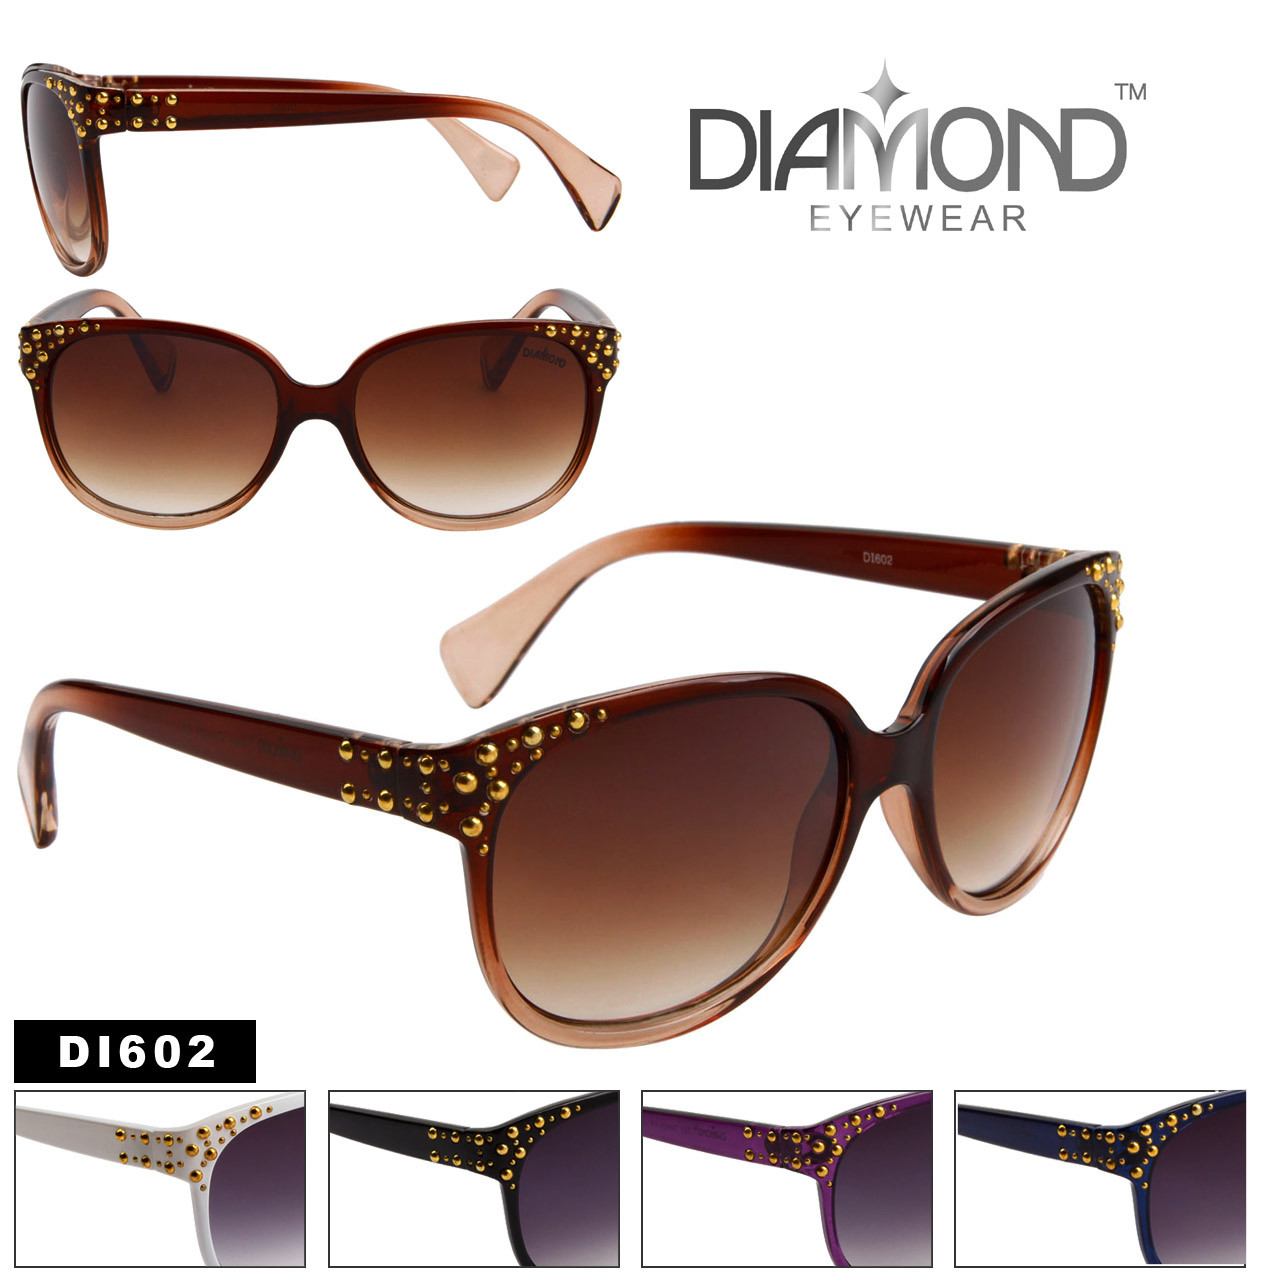 Wholesale Fashion Sunglasses Diamond™ Eyewear - Style # DI602